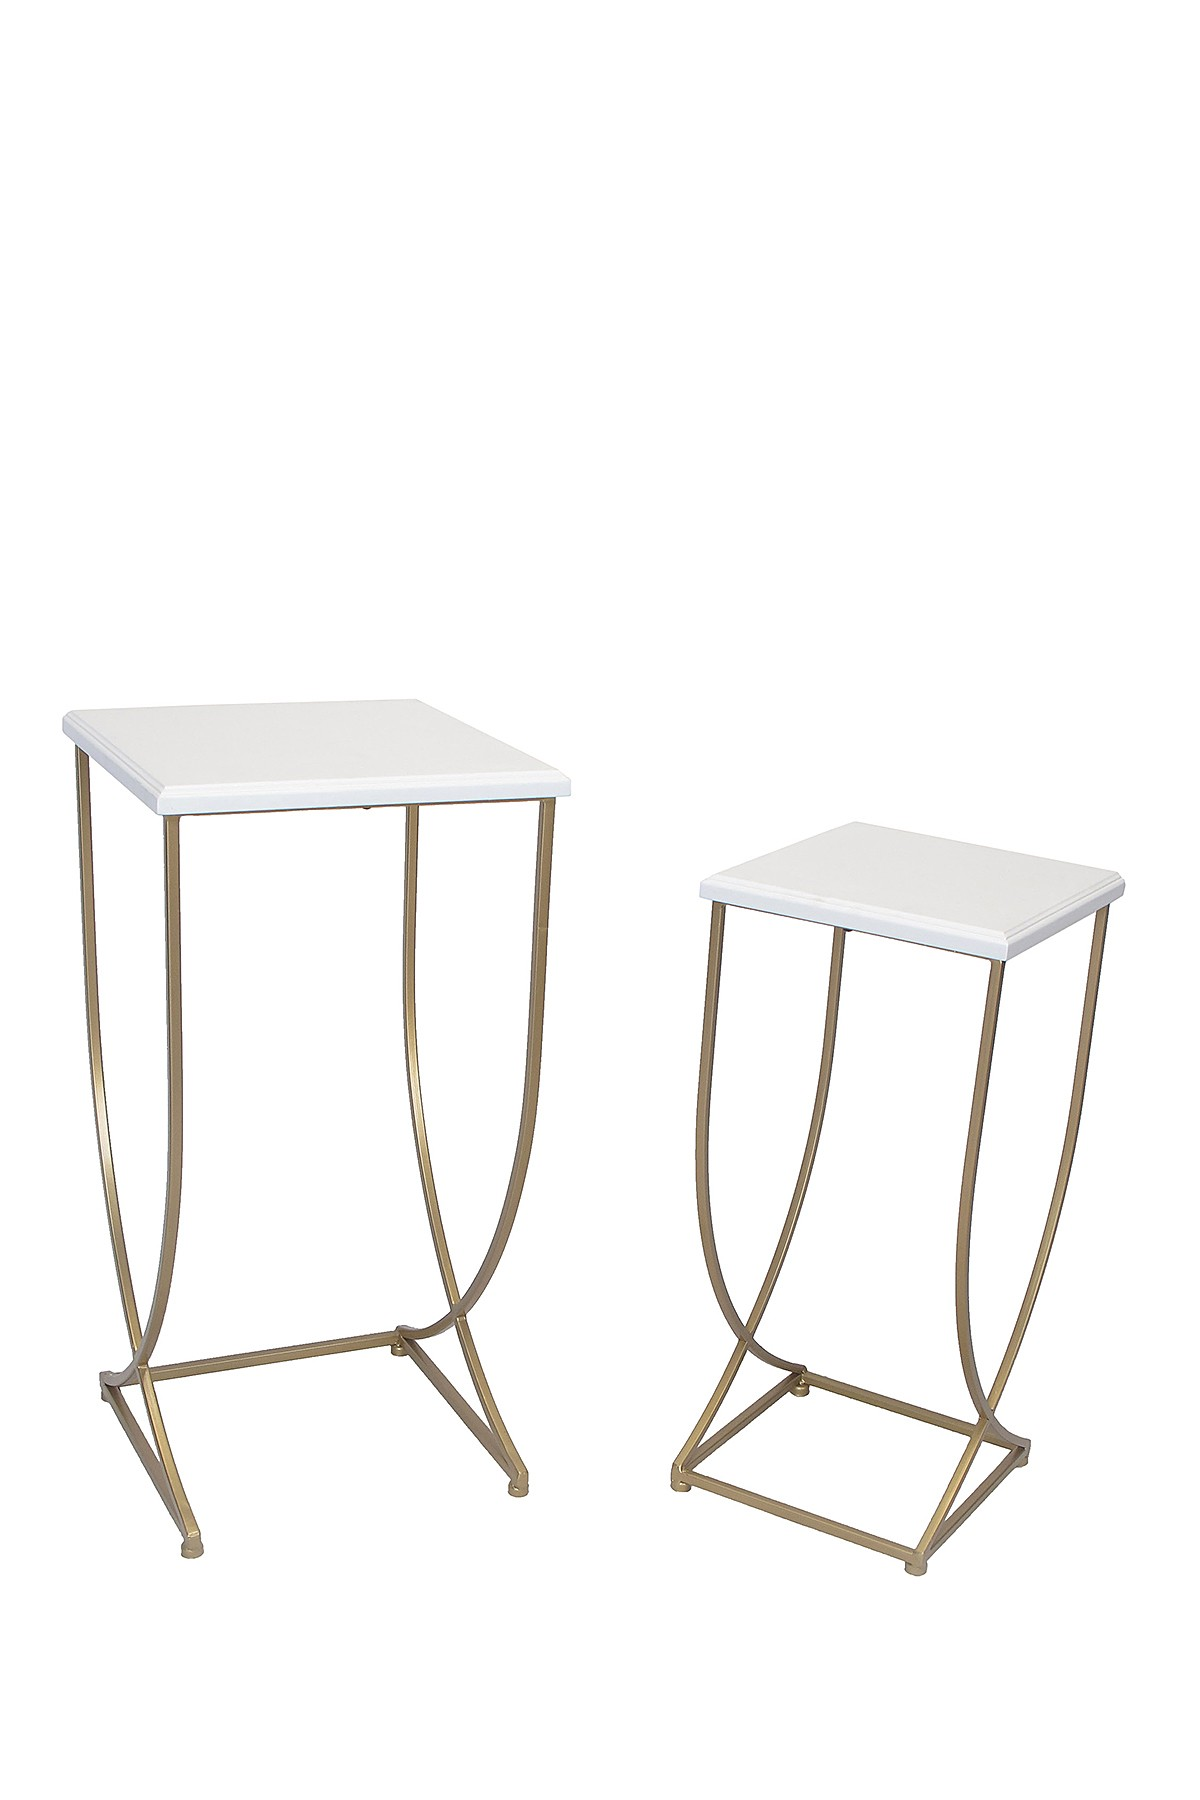 sagebrook home white metal accent tables set nordstrom rack table umbrella and stand retro inspired furniture pier one side navy end electric drum little kid chairs ikea kids